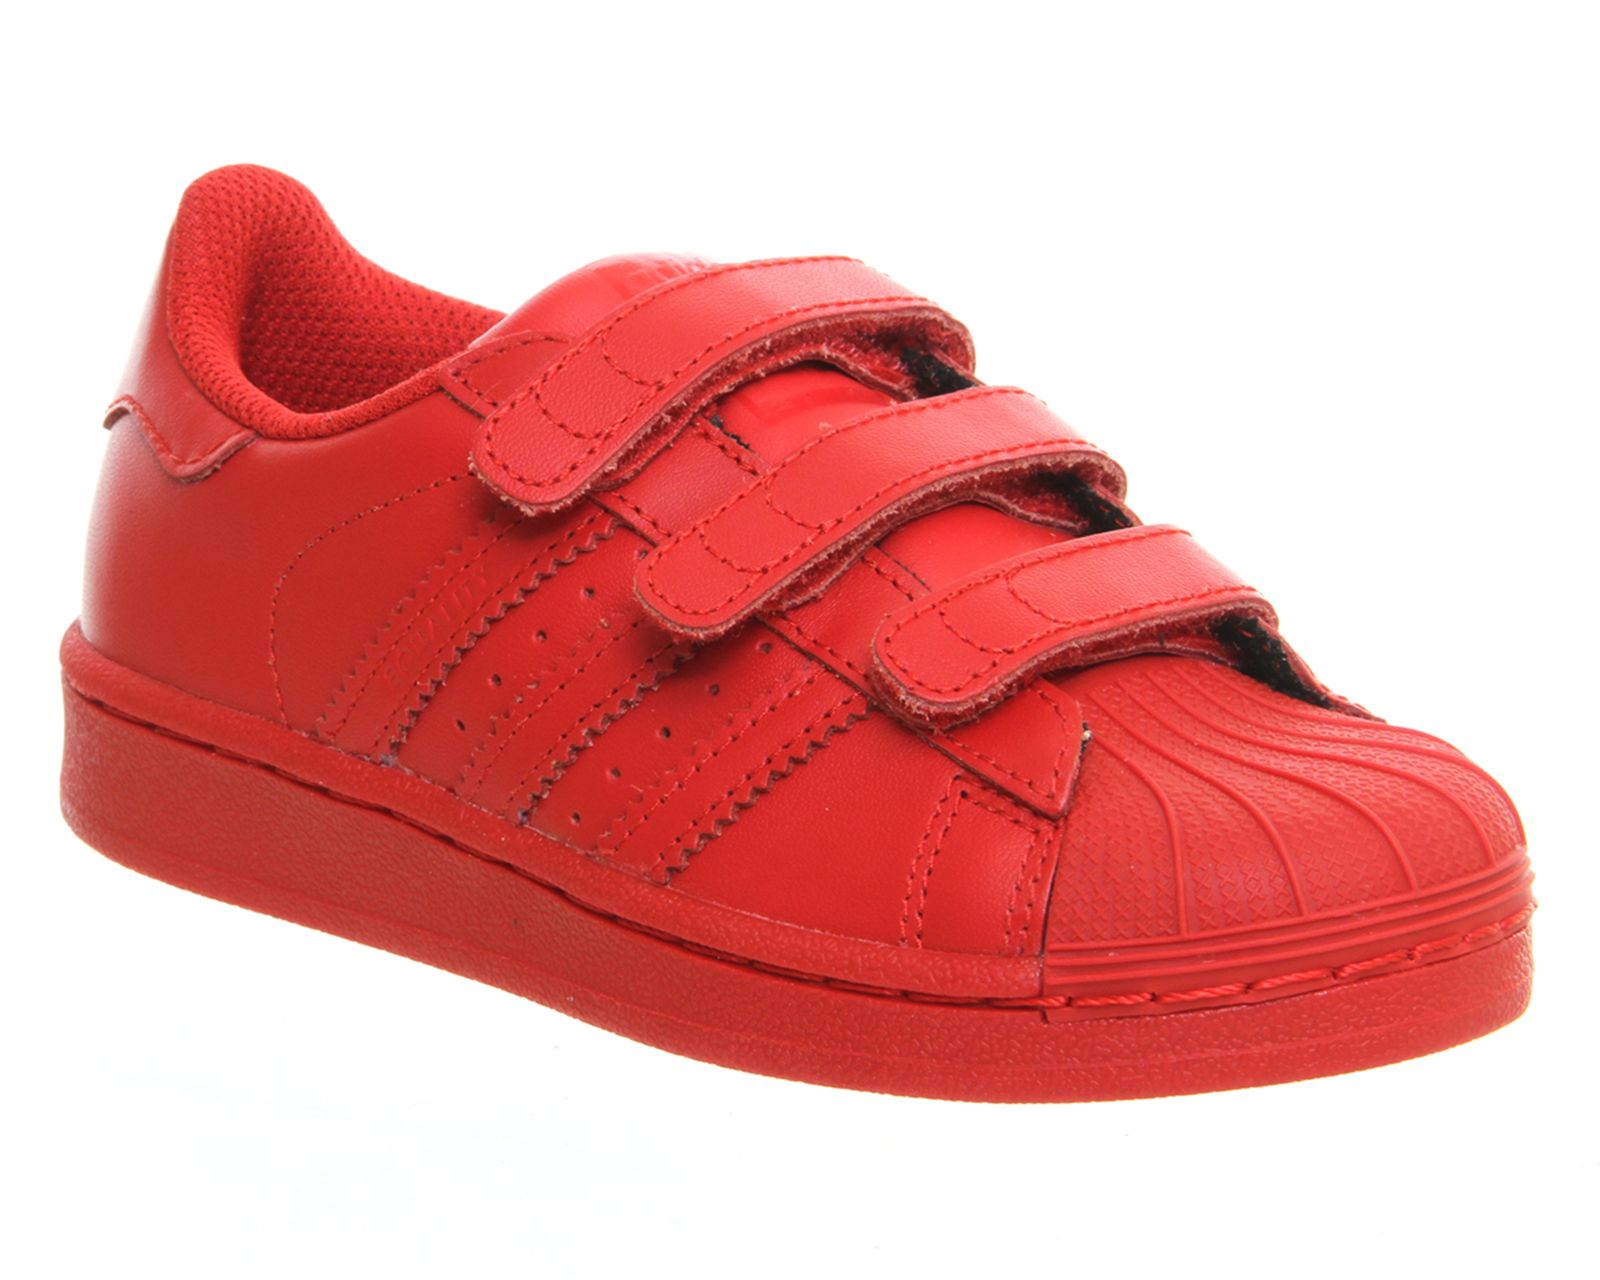 Adidas Superstar Kids 10-2 Pharrell Supercolor Red - Unisex